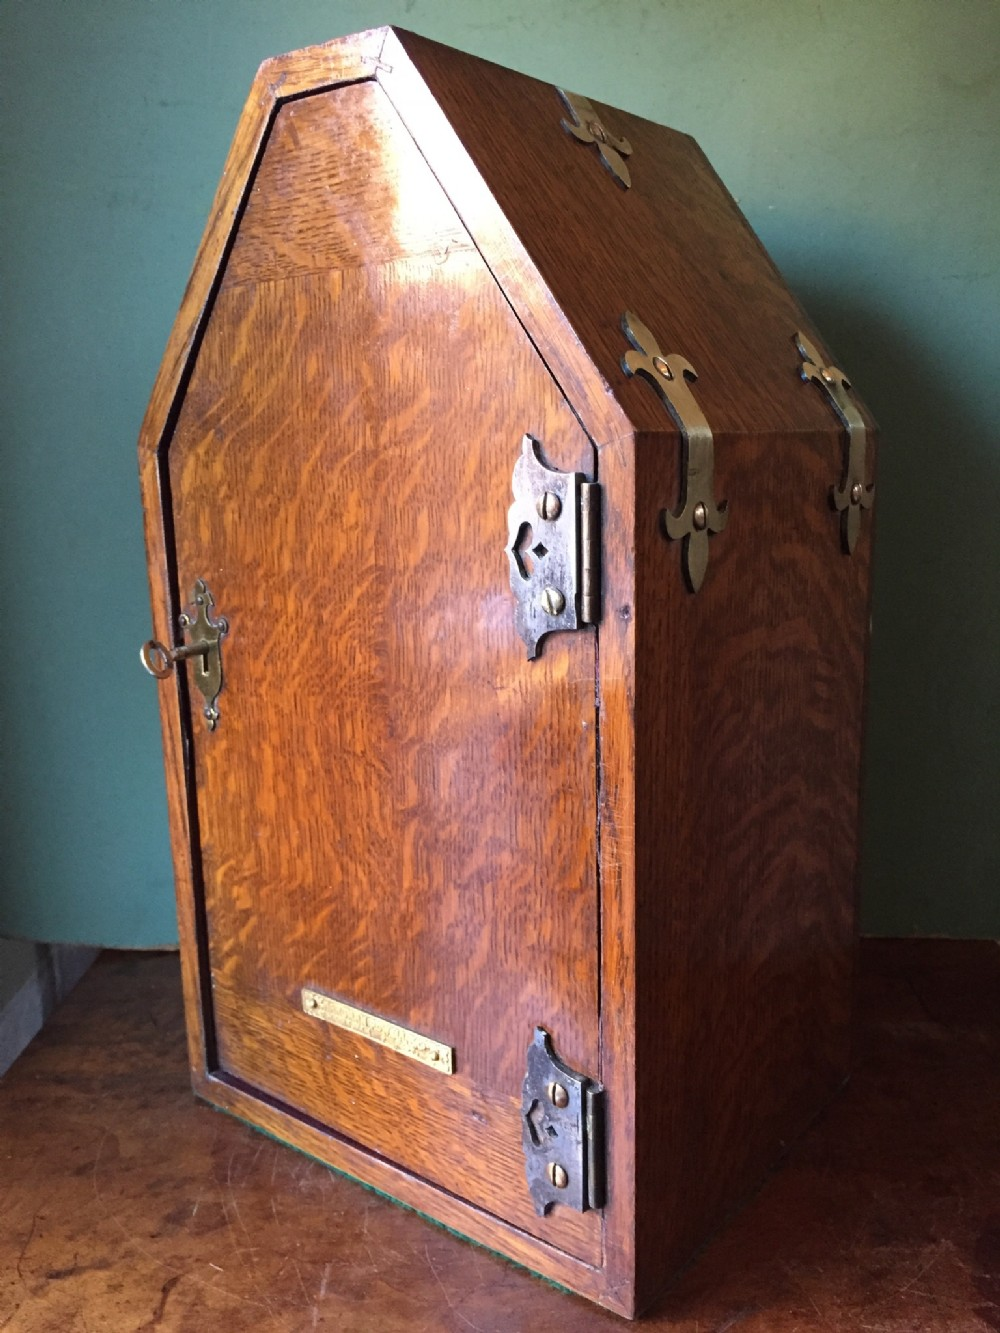 late c19th gothic design 'countryhouse' type oak posting or letterbox by hardman powelland company